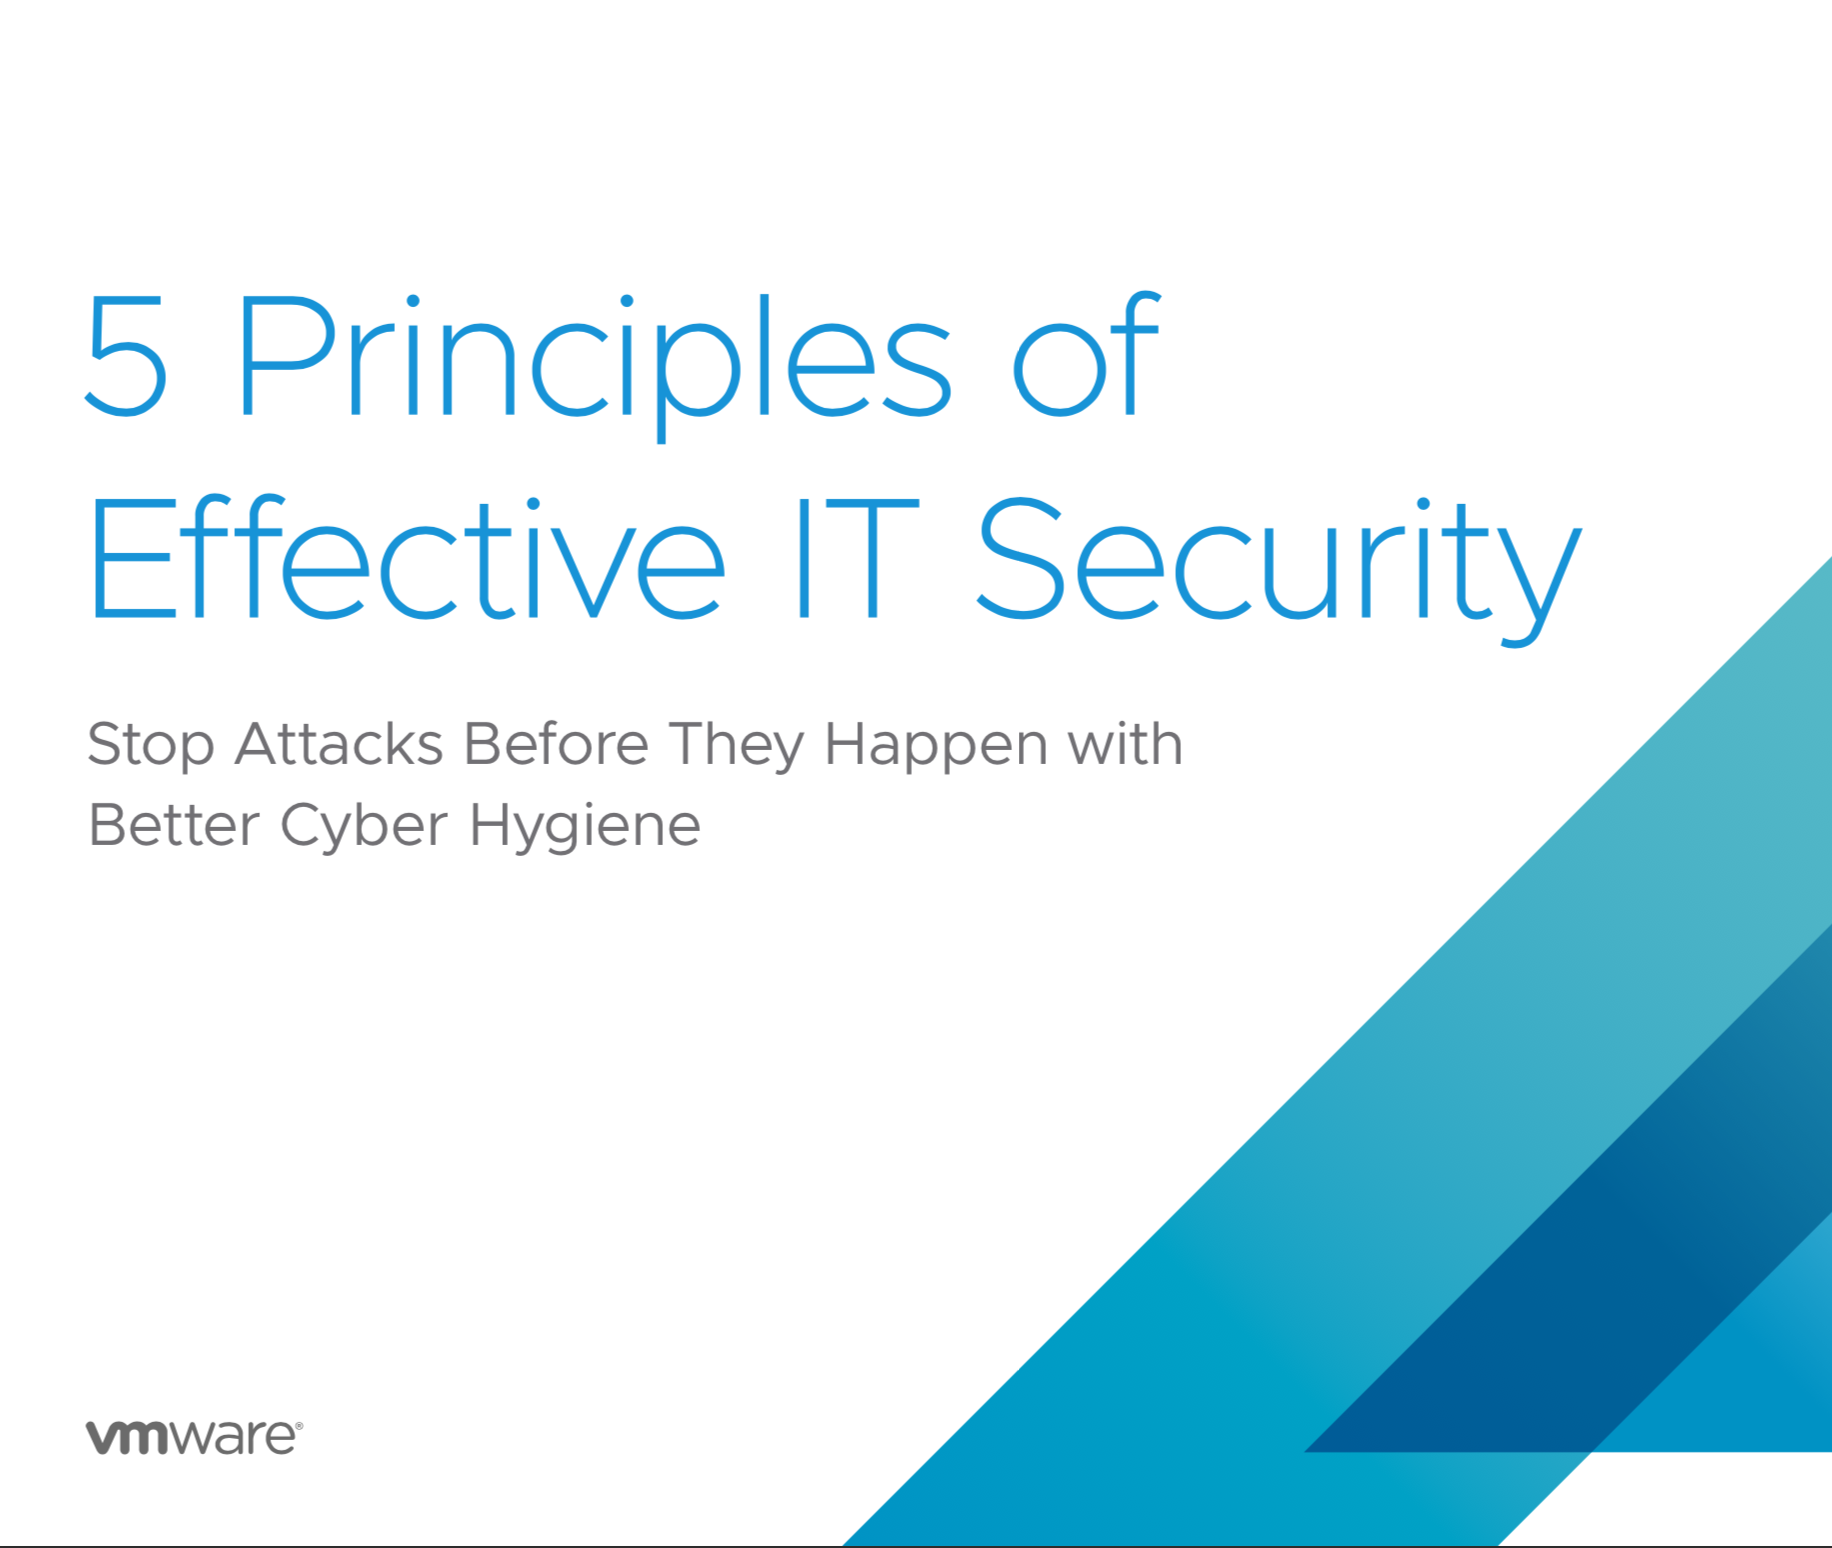 5 Principles of Effective IT Security